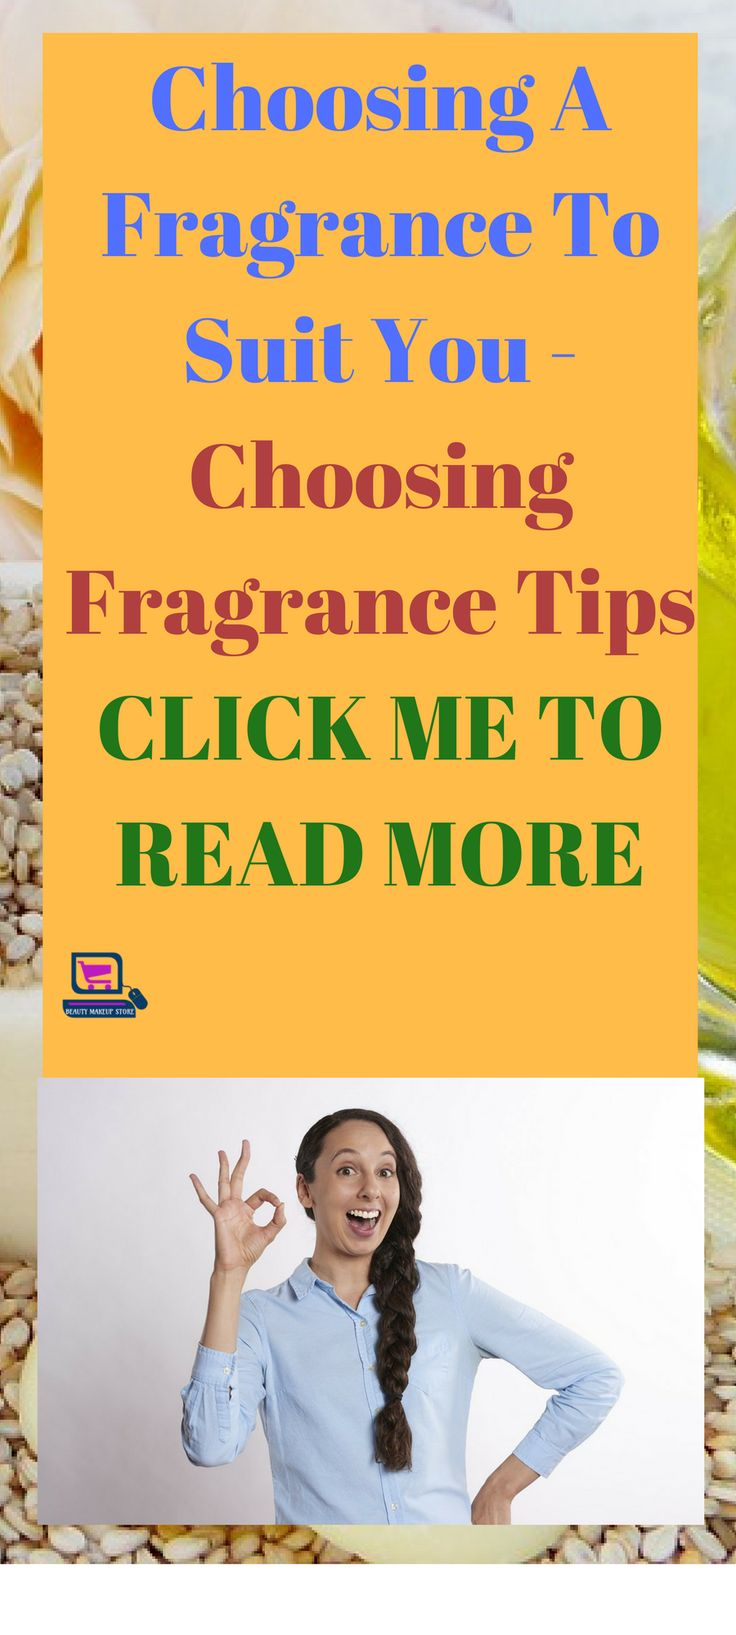 Choosing A Fragrance To Suit You Choosing Fragrance Tips The first step involved in shopping for perfume or cologne is to examine the scent category. #choosingafragrancetosuityou #fragrances #howtochooseafragrance #fragrancetips  fragrance tips | fragrance tips smell good | fragrance tips ideas | fragrance tips beauty |